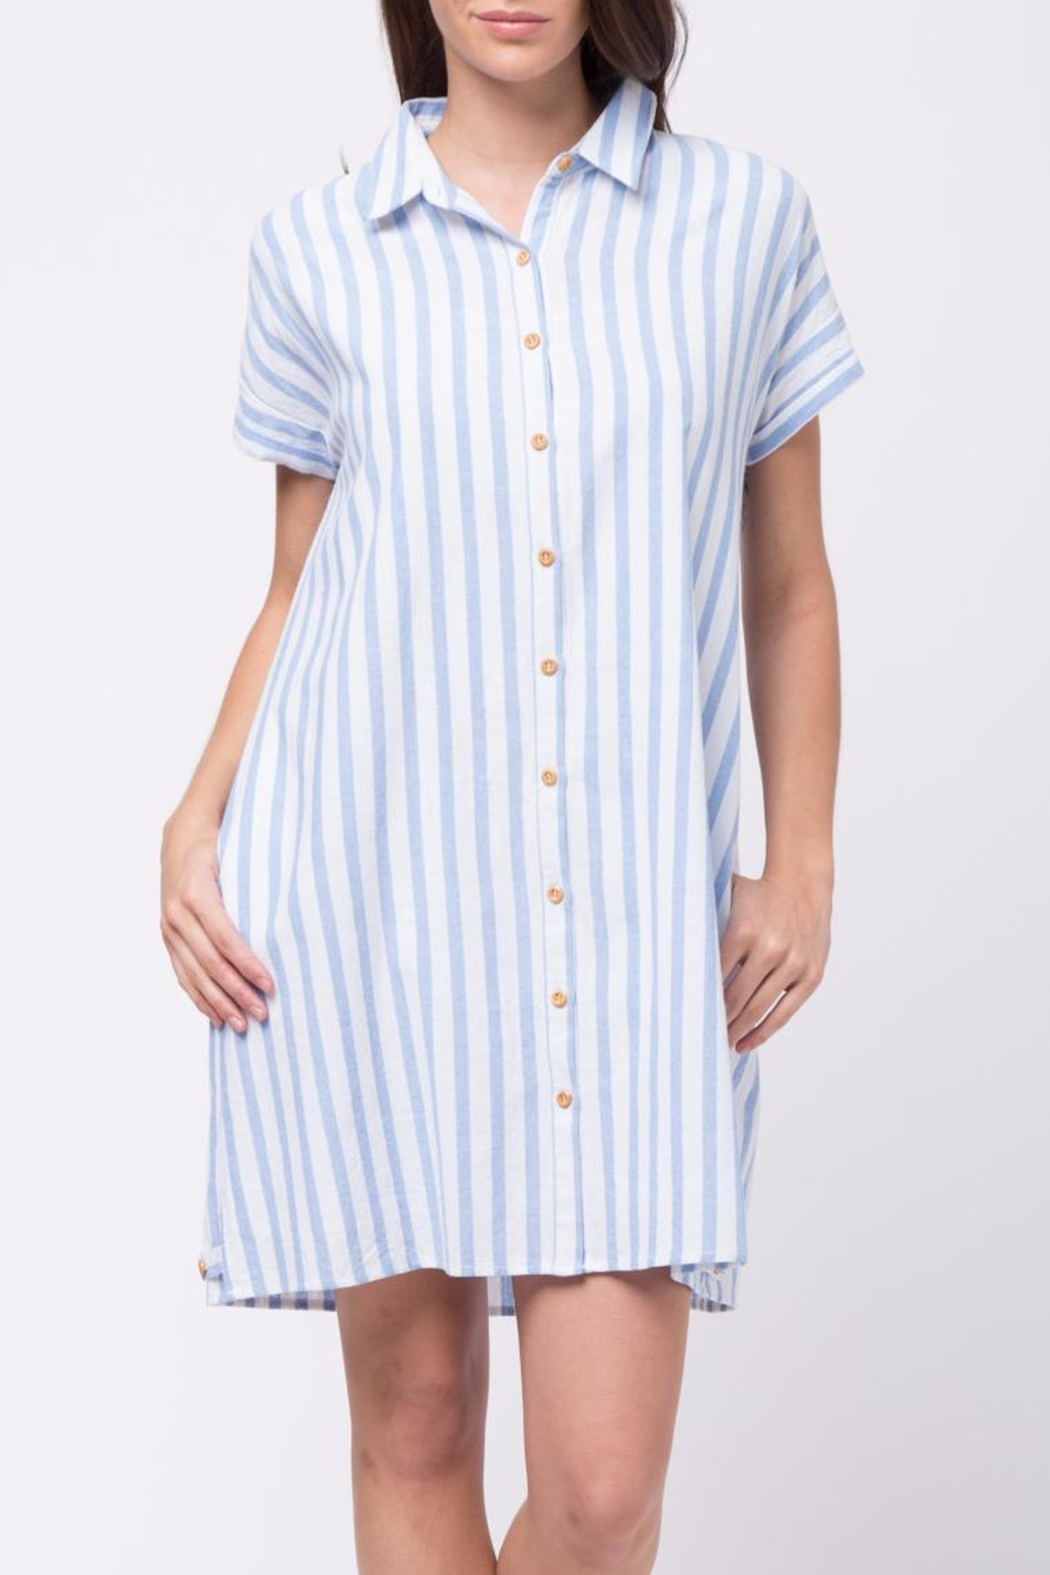 Movint Vertical Striped Shirt Dress - Main Image